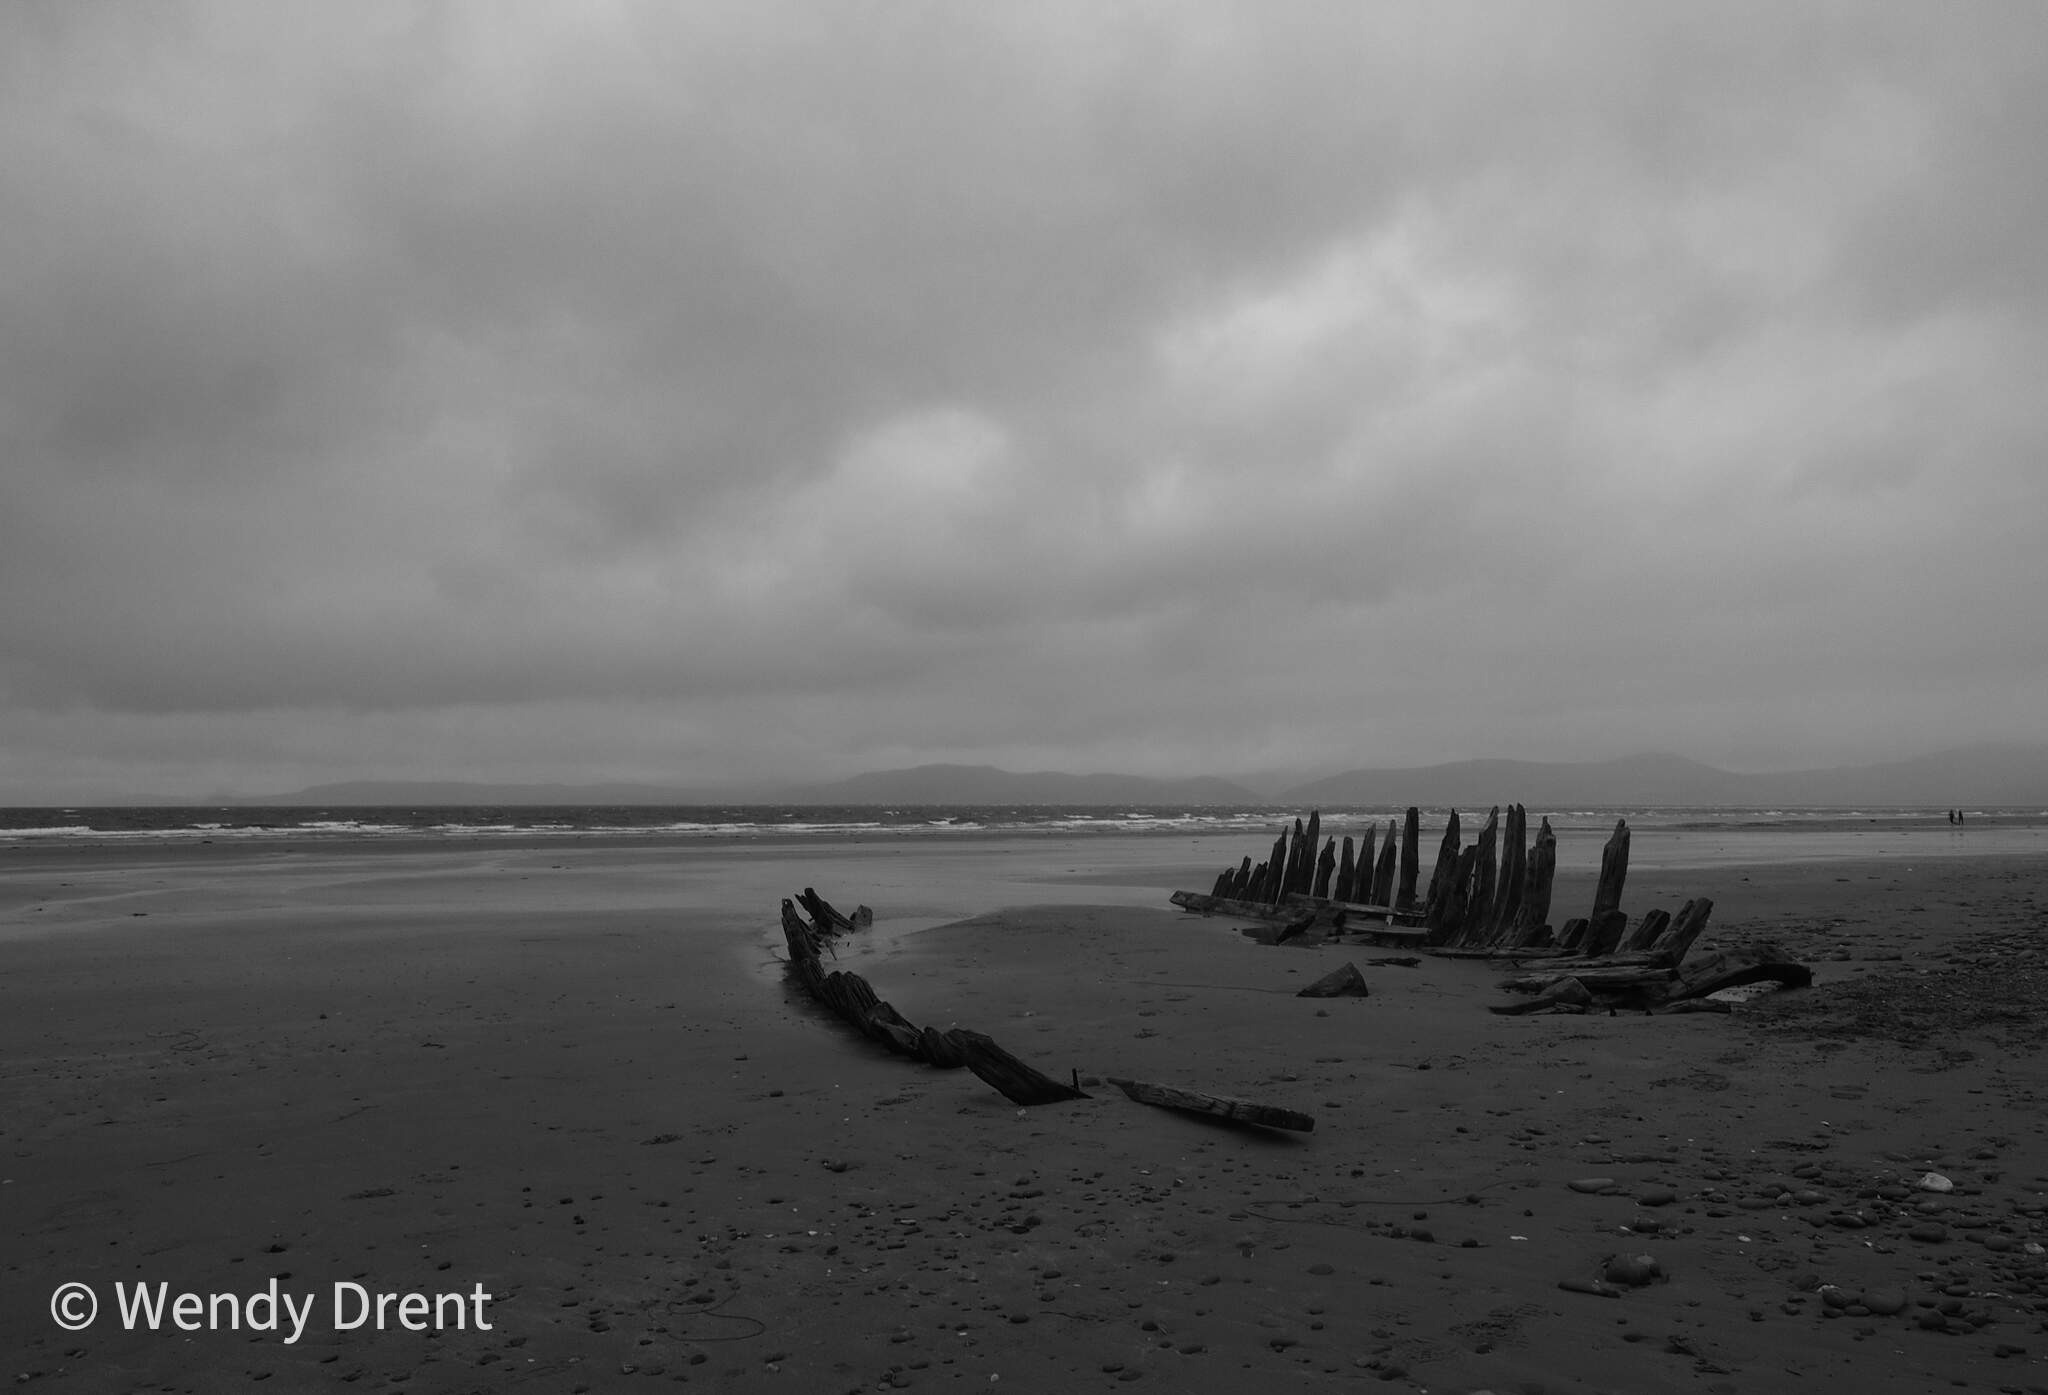 ship wreck, black and white, beach, ireland, atlantic ocean, wendy drent